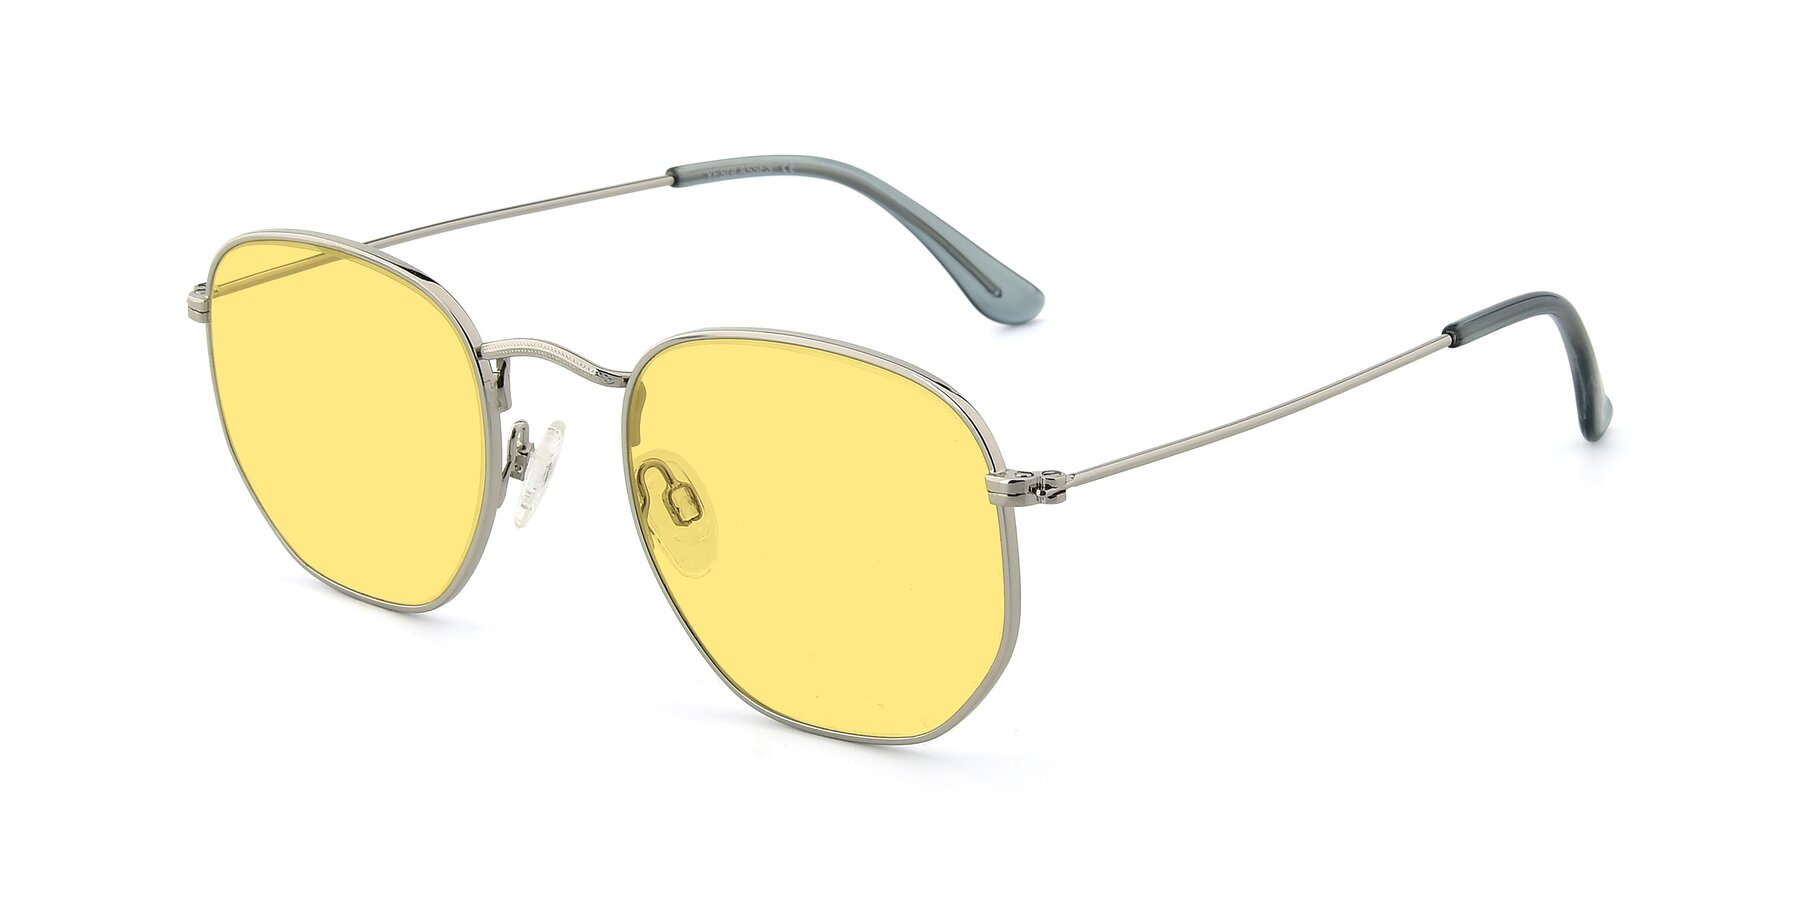 Angle of SSR1943 in Silver with Medium Yellow Tinted Lenses